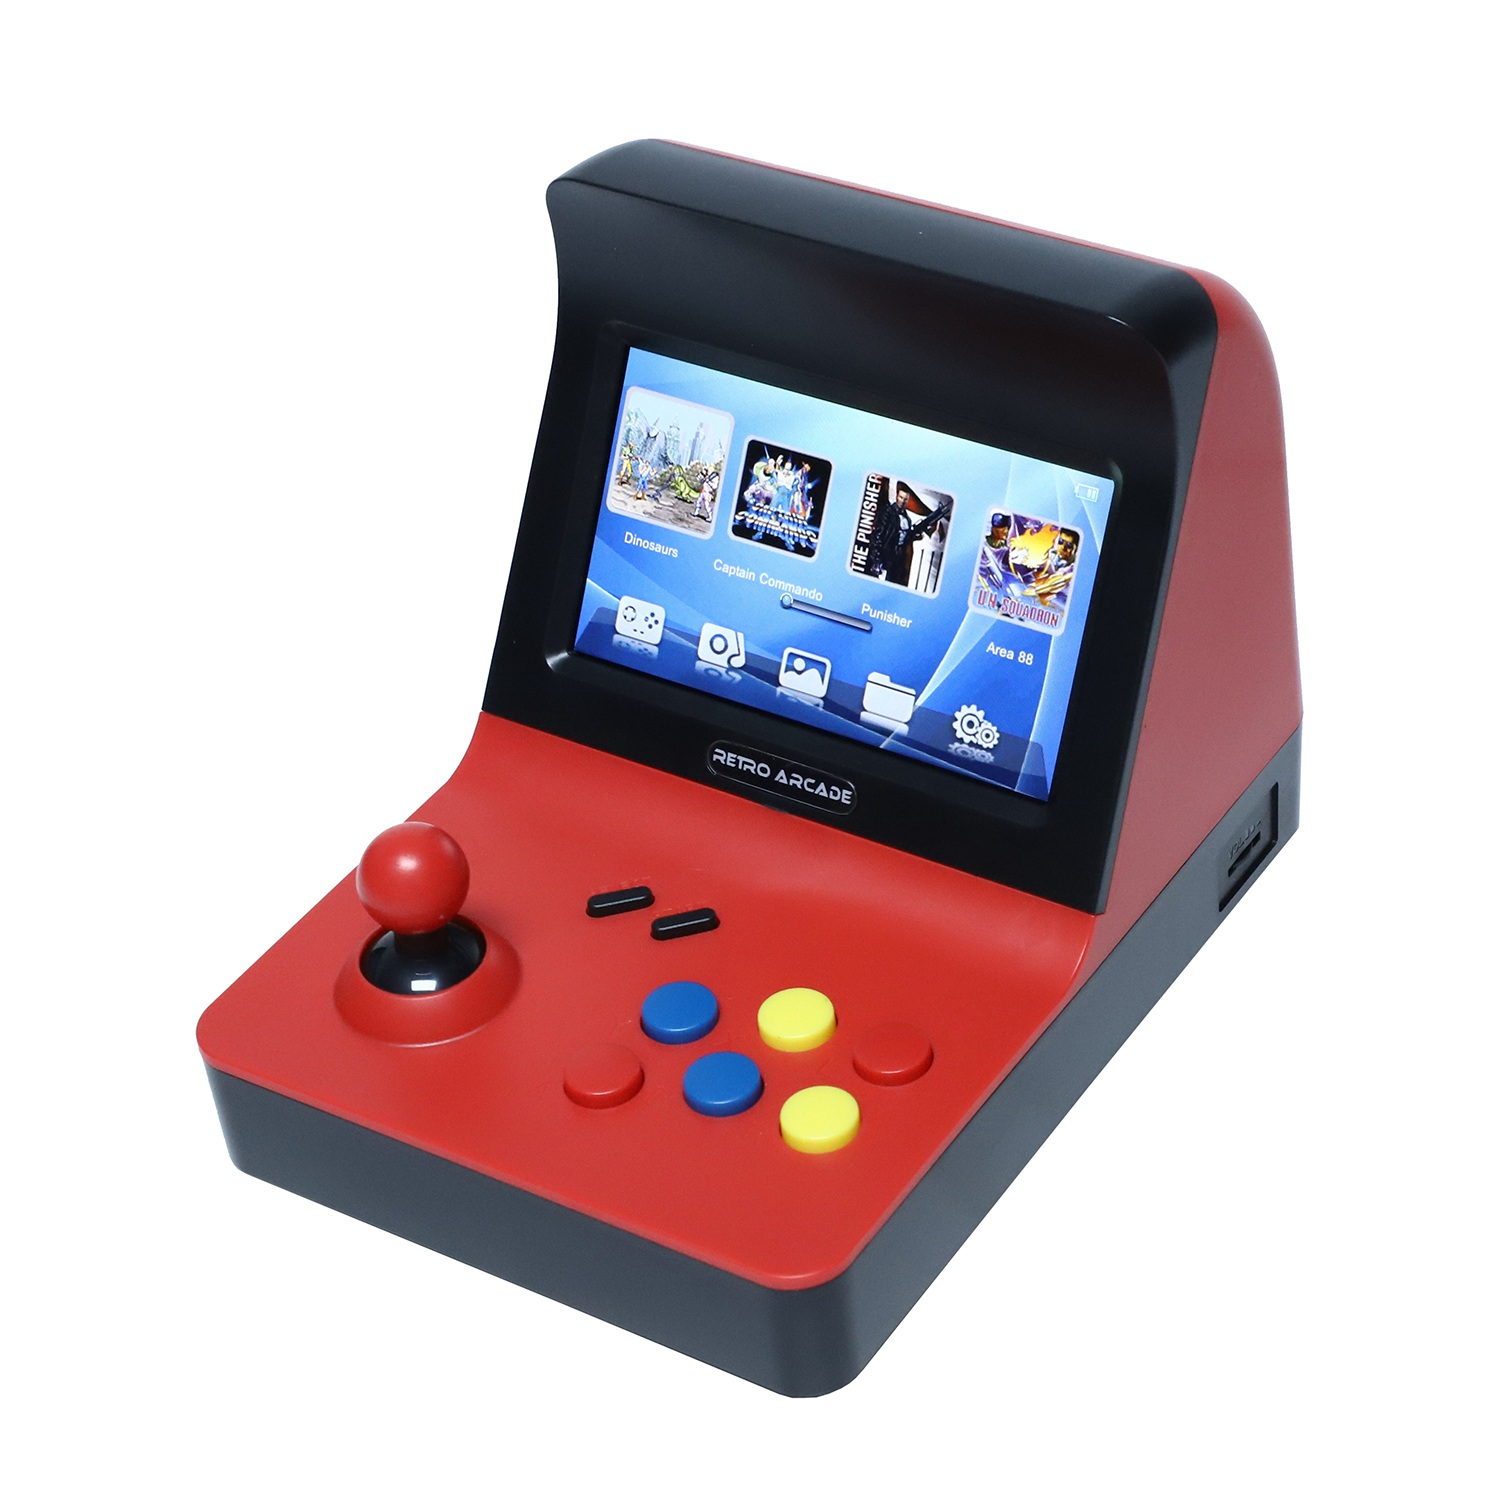 Powkiddy A8 Retro Arcade Console Game Console Gaming Machine Built In 3000 Classic Games Gamepad Control